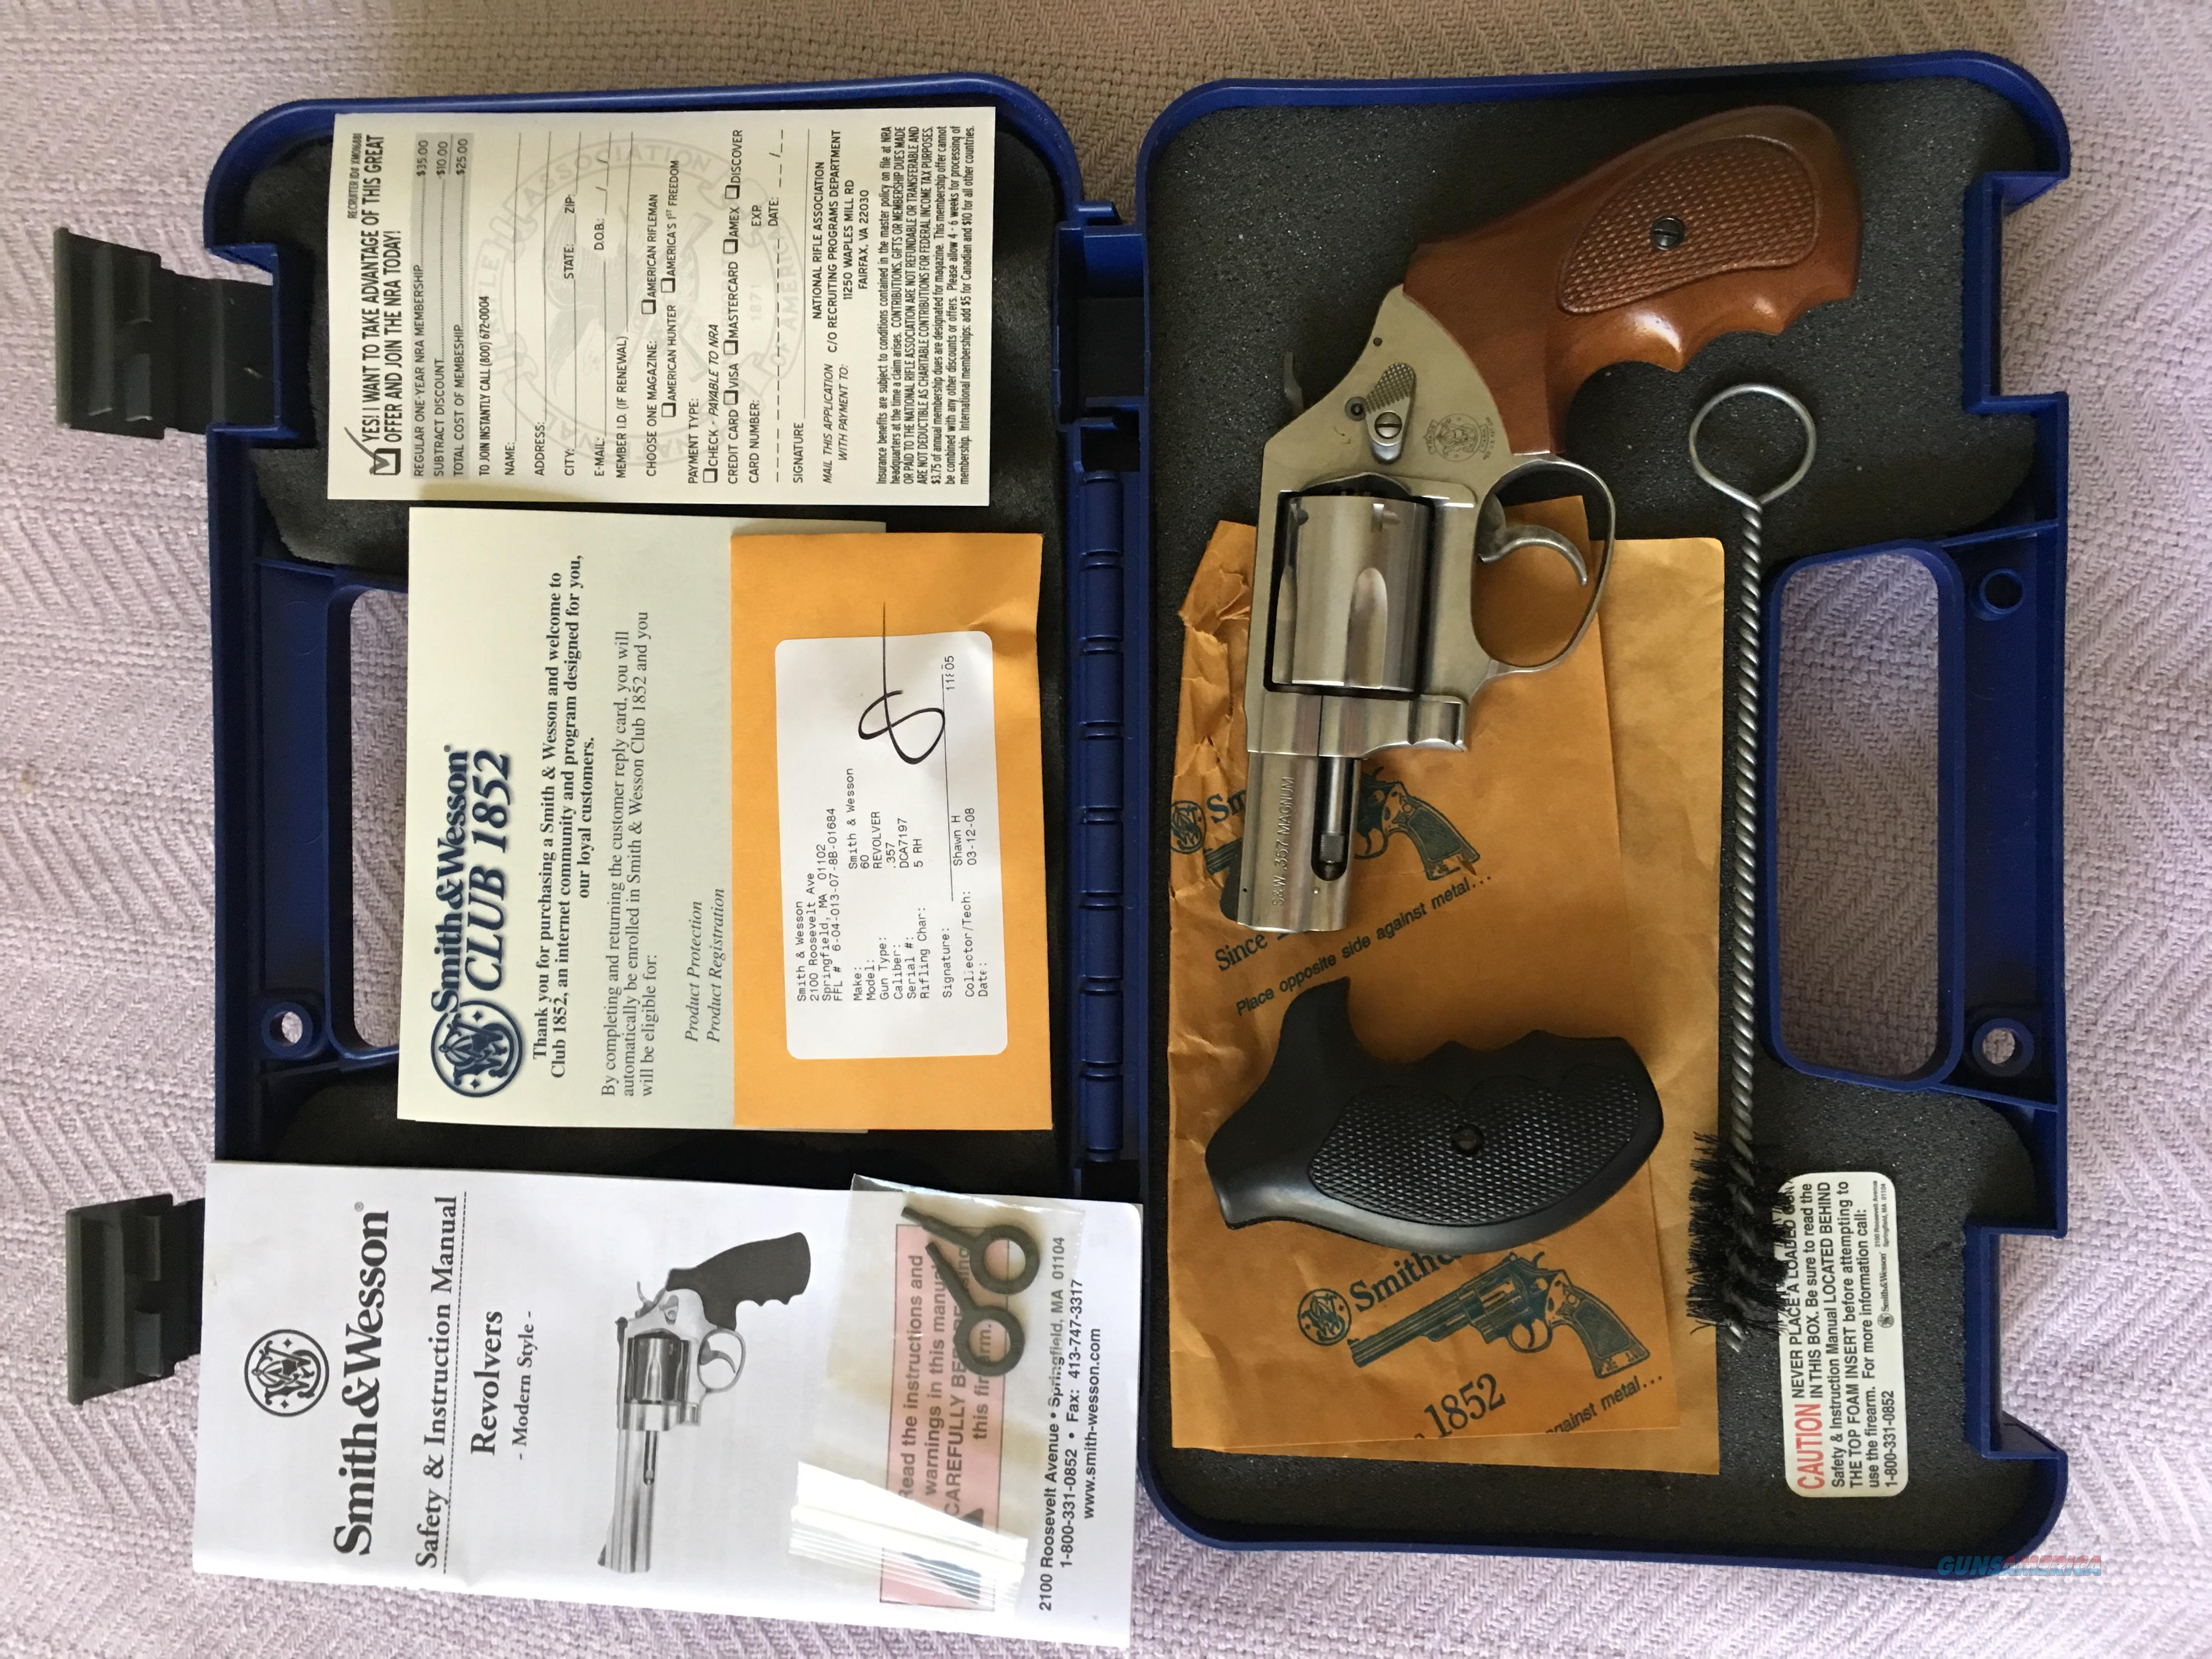 Smith & Wesson Model 60 .357 Magnum Stainless Steel   Guns > Pistols > Smith & Wesson Revolvers > Small Frame ( J )